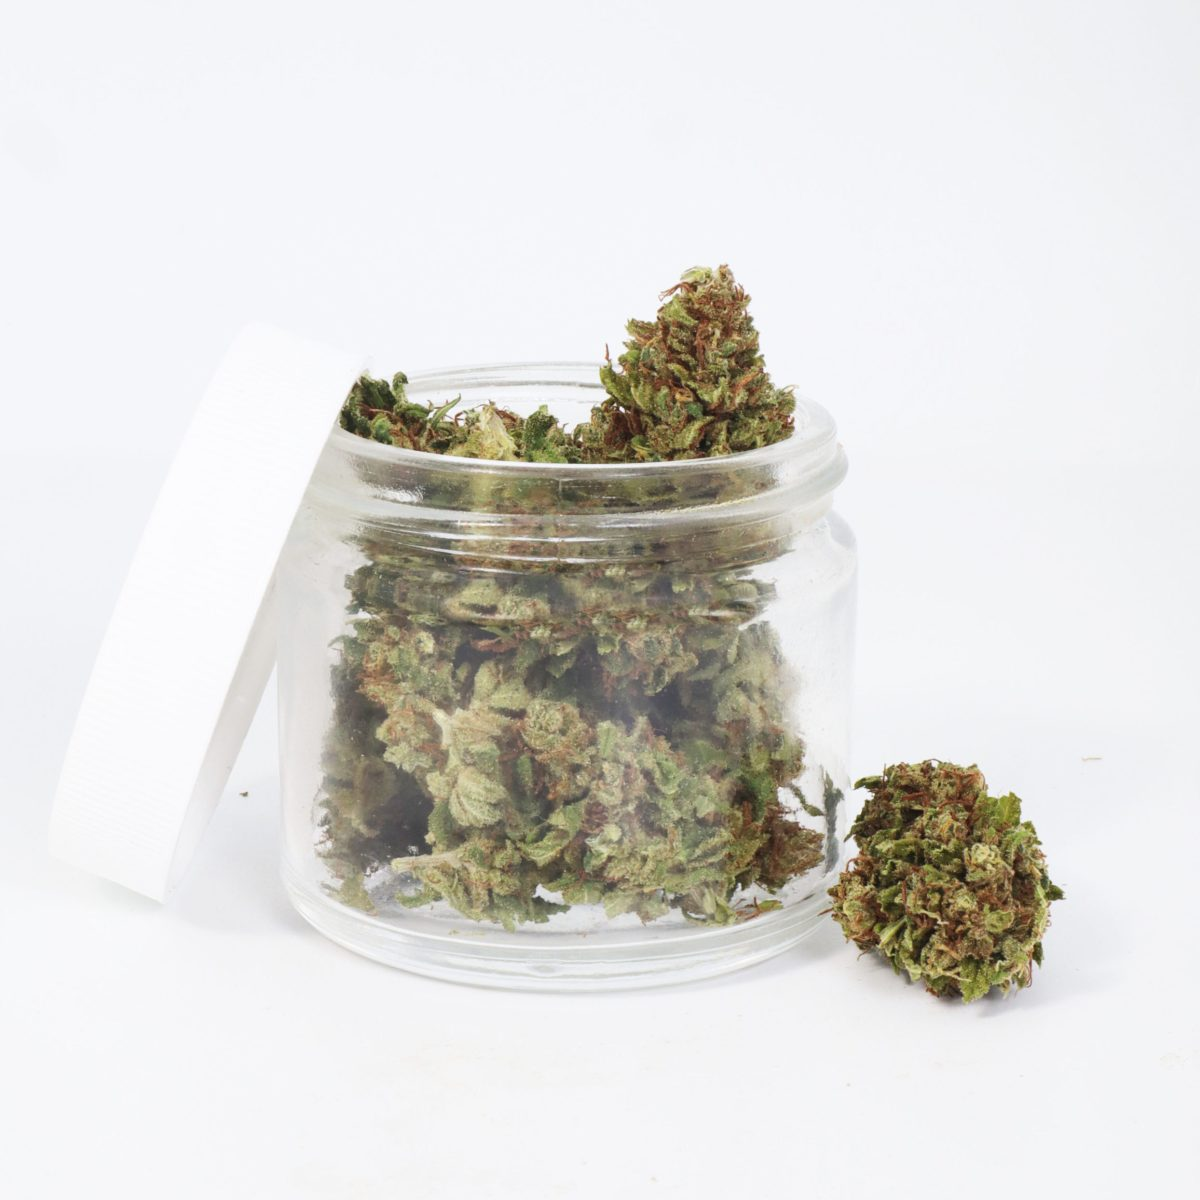 Rich results on Google's SERP when searching for 'Sour Space Candy Hemp Flower'